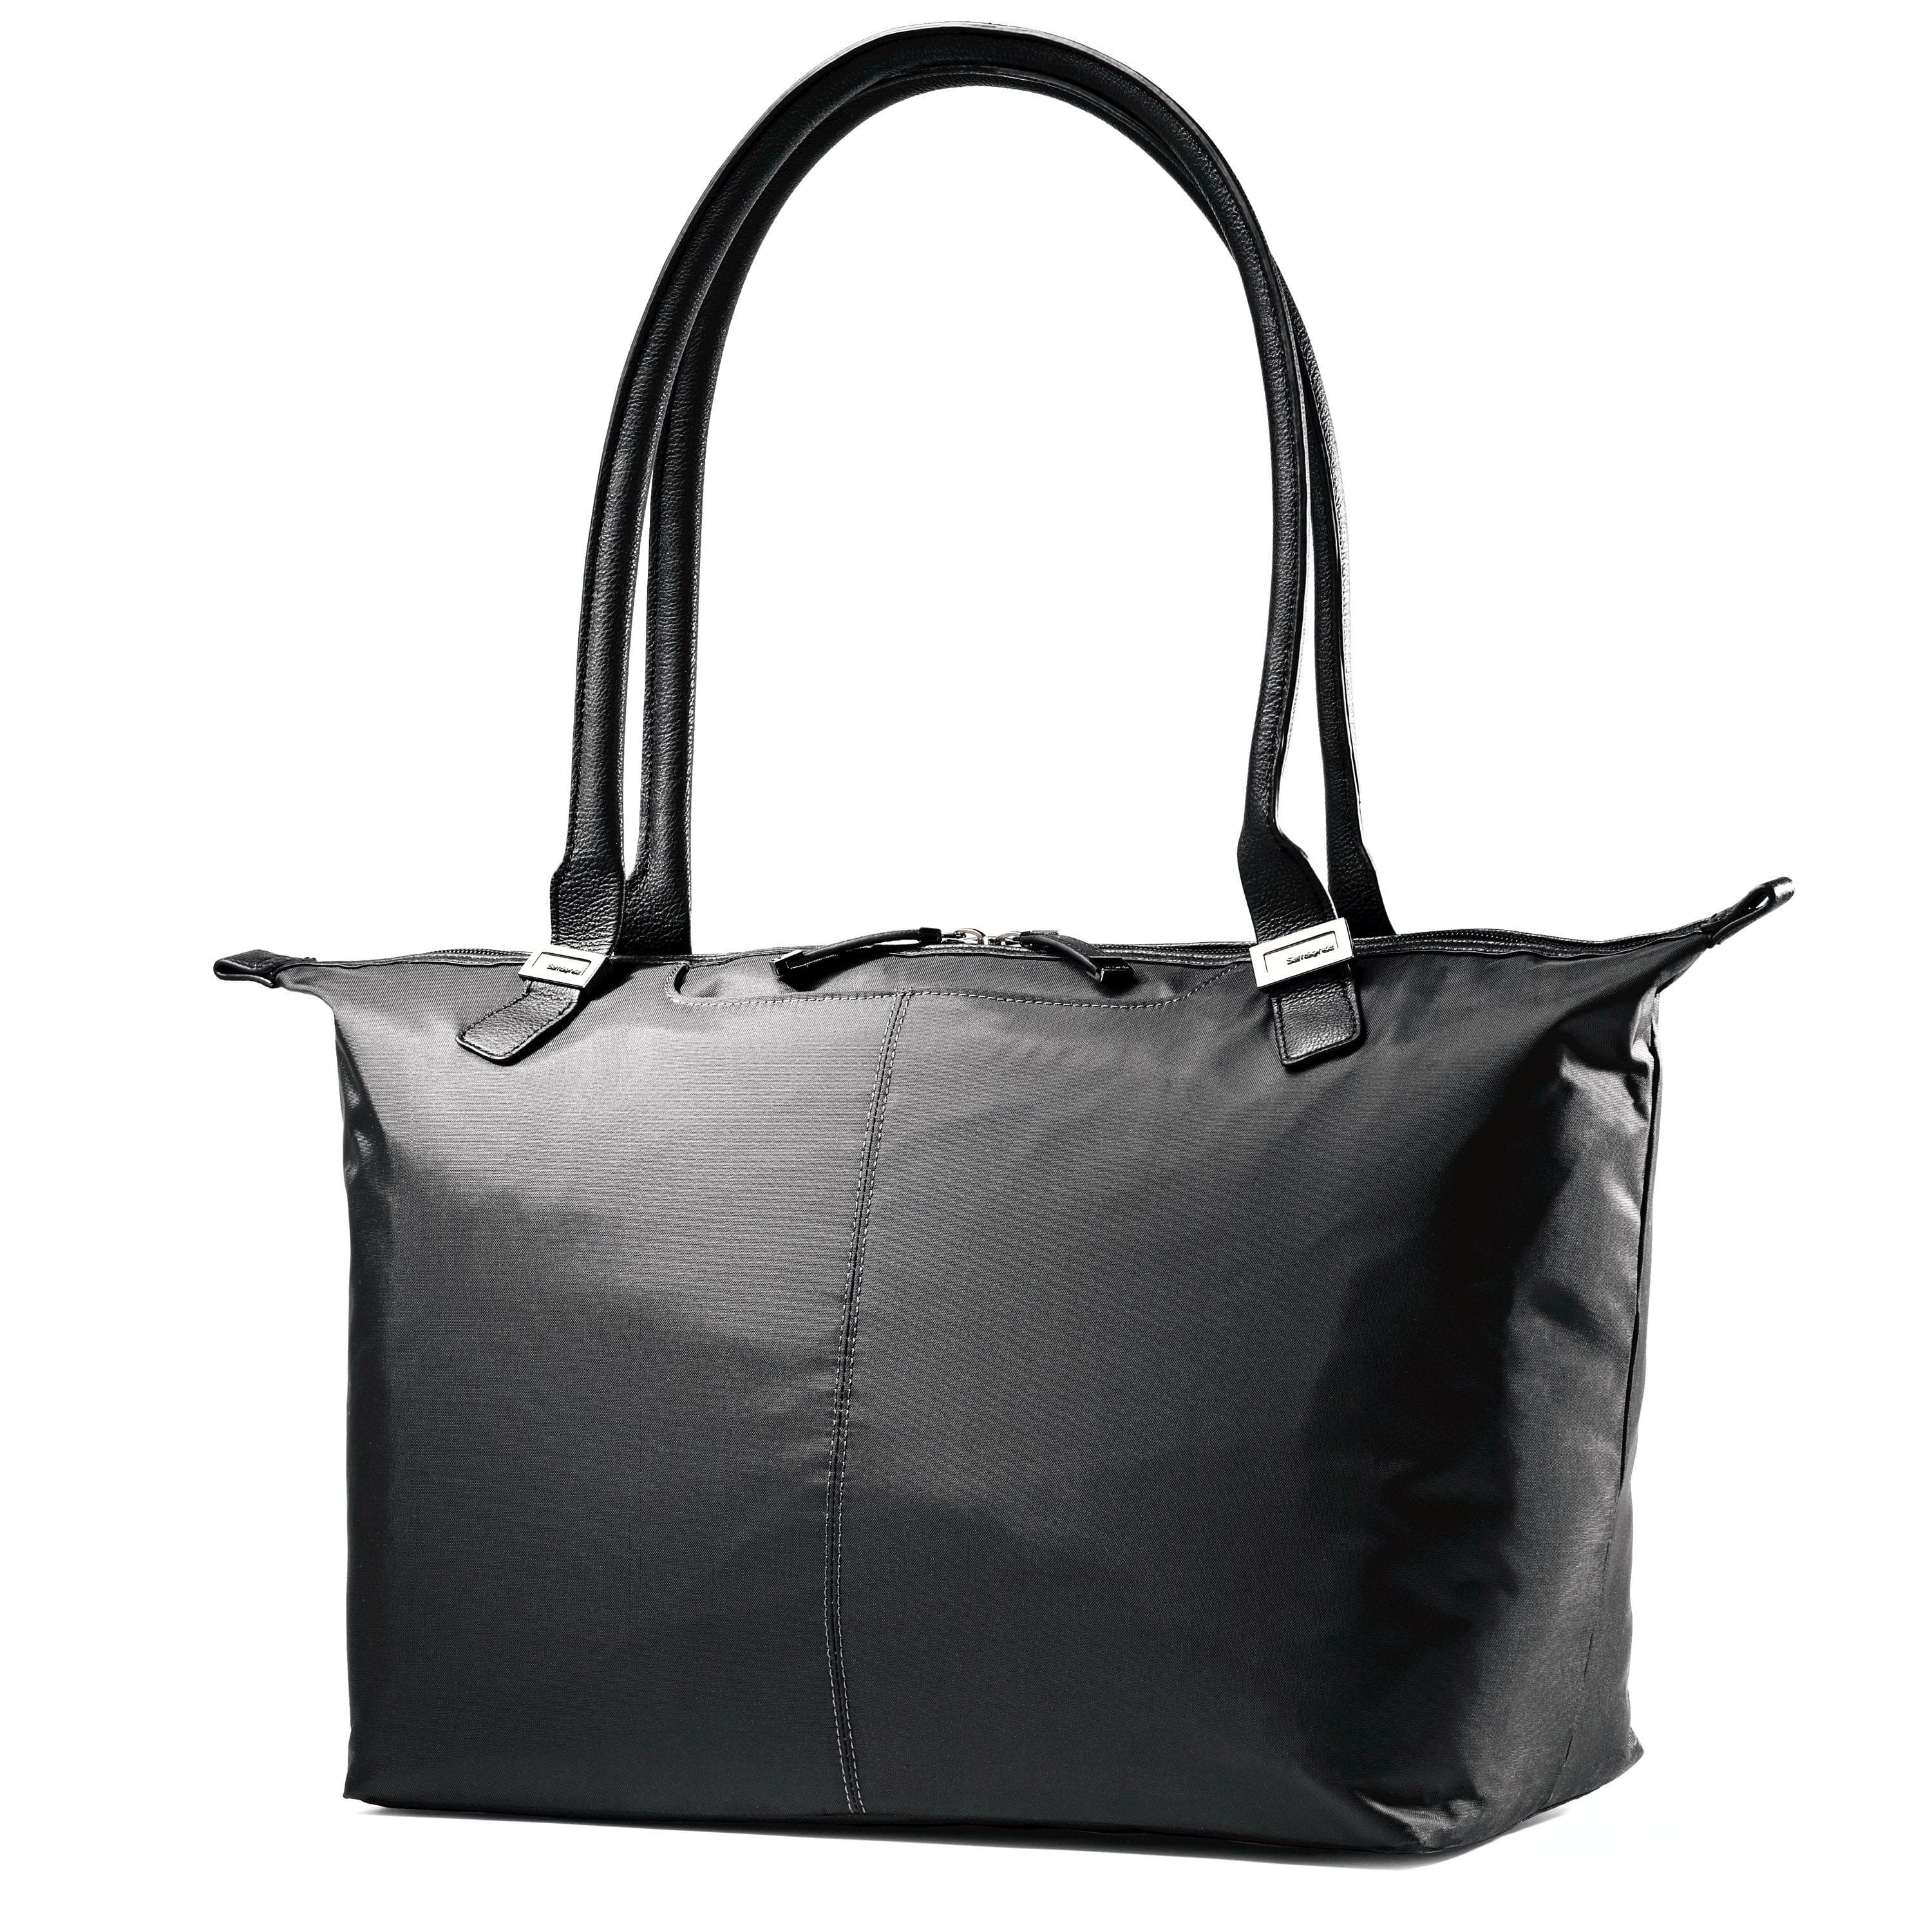 Samsonite Jordyn Laptop Tote Bag $35 + Free Shipping